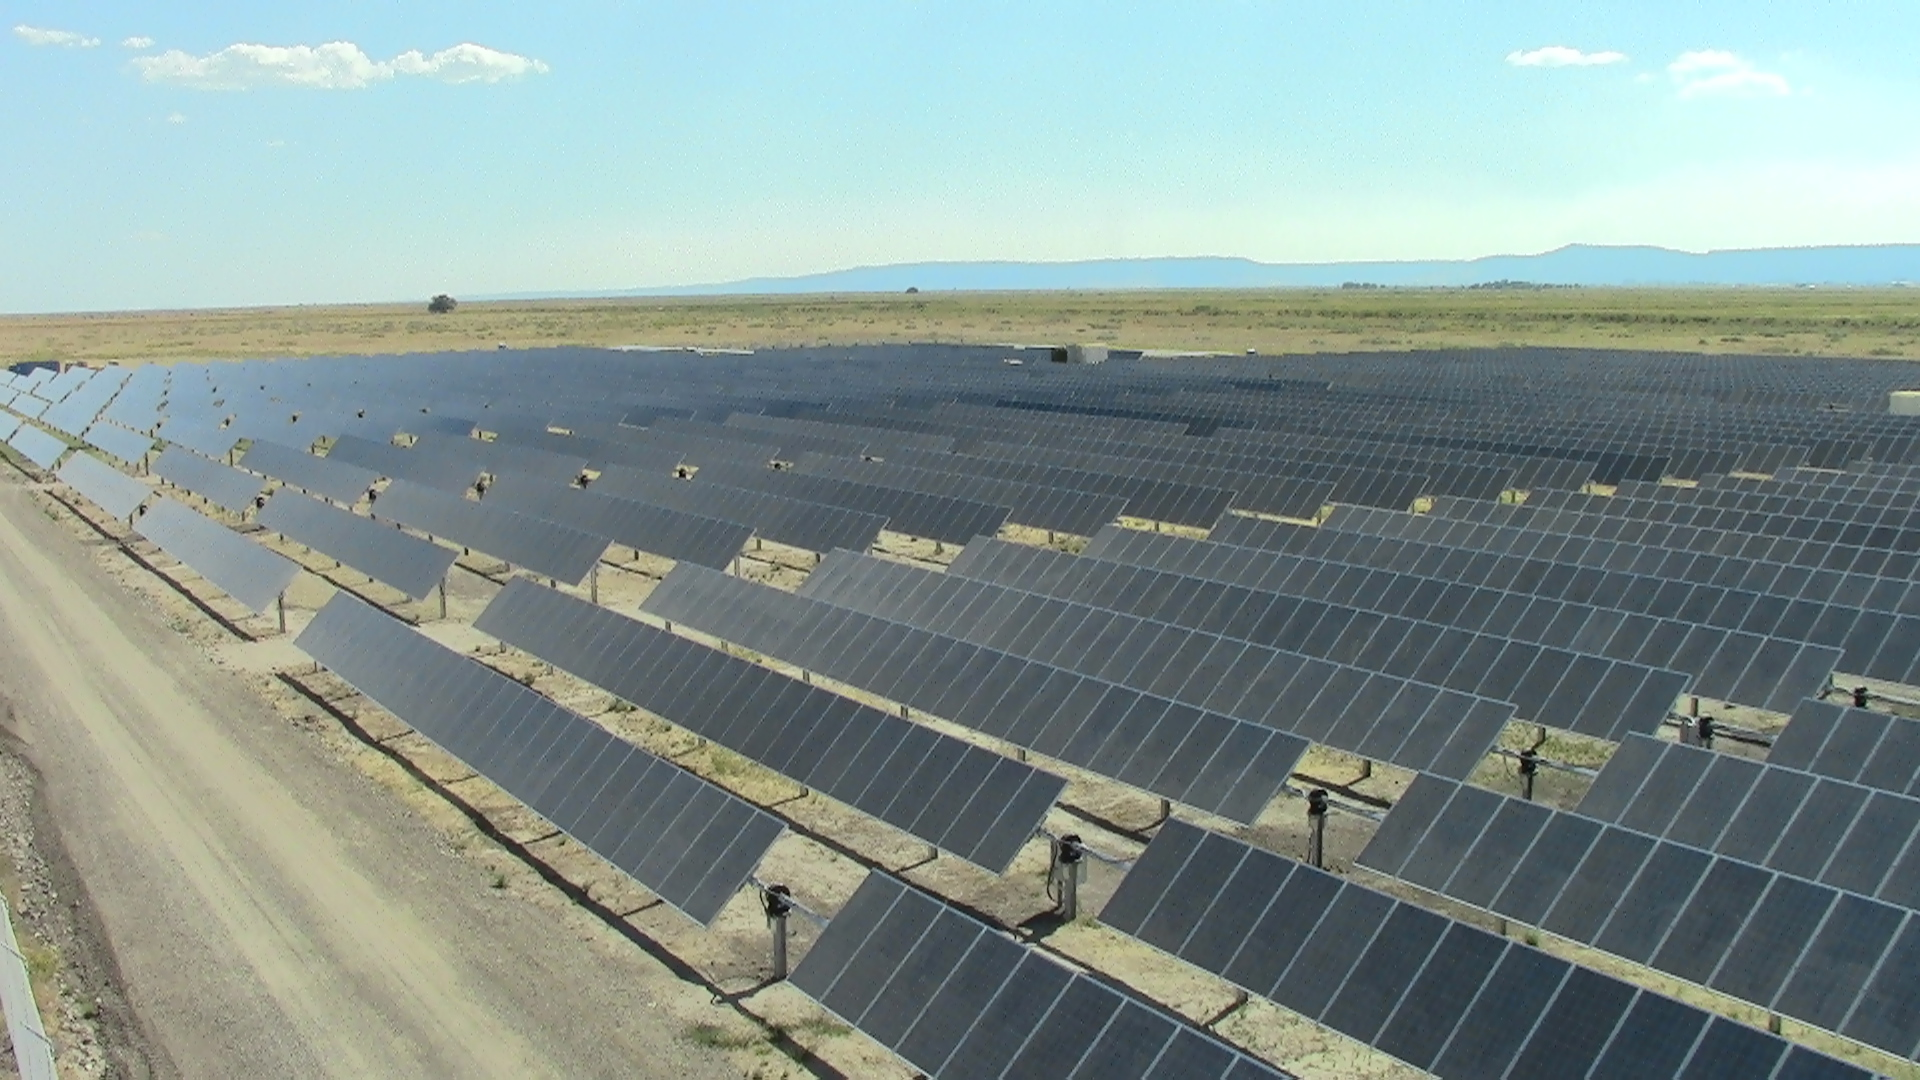 Black Cap Solar project in Oregon, one of Pacificorp's early solar projects. Image: Pacificorp.